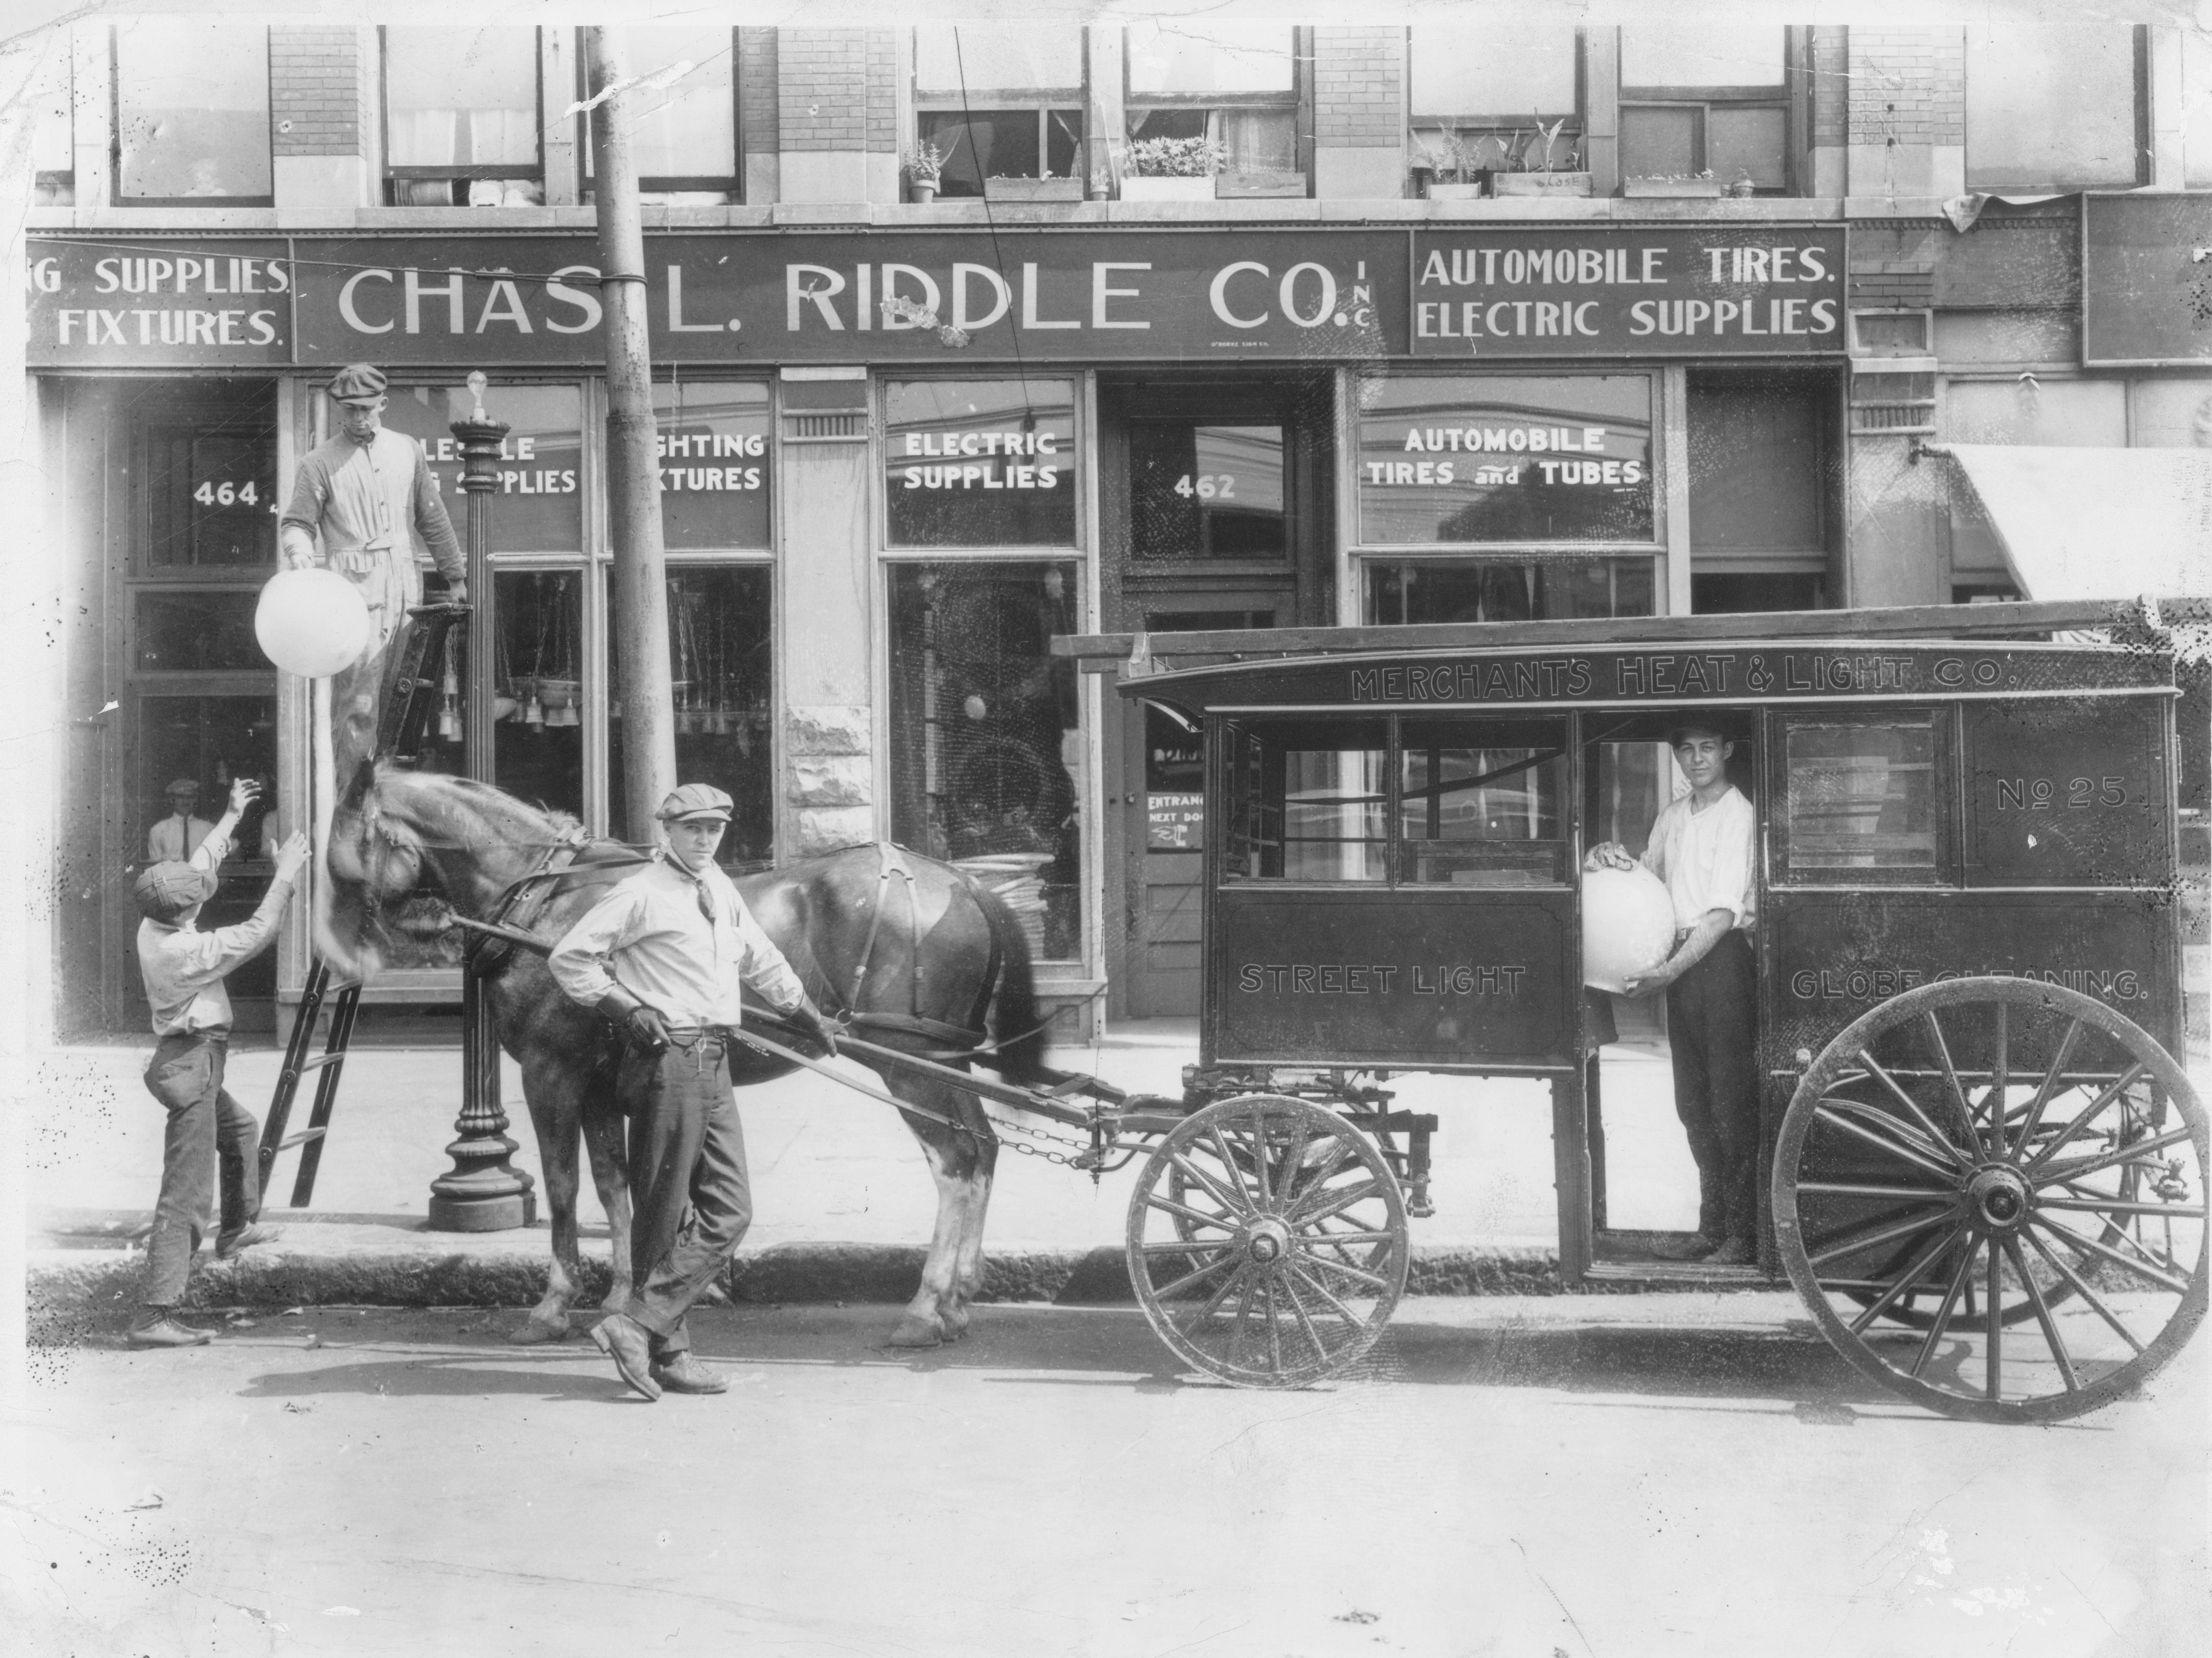 This horse drawn lighting patrol was still in existence in Indianapolis in 1921 when this photo was taken. In the background is the Chas. L. Riddle Co., Inc., which sold various supplies and fixtures, including automobile tires and electric lighting fixtures.